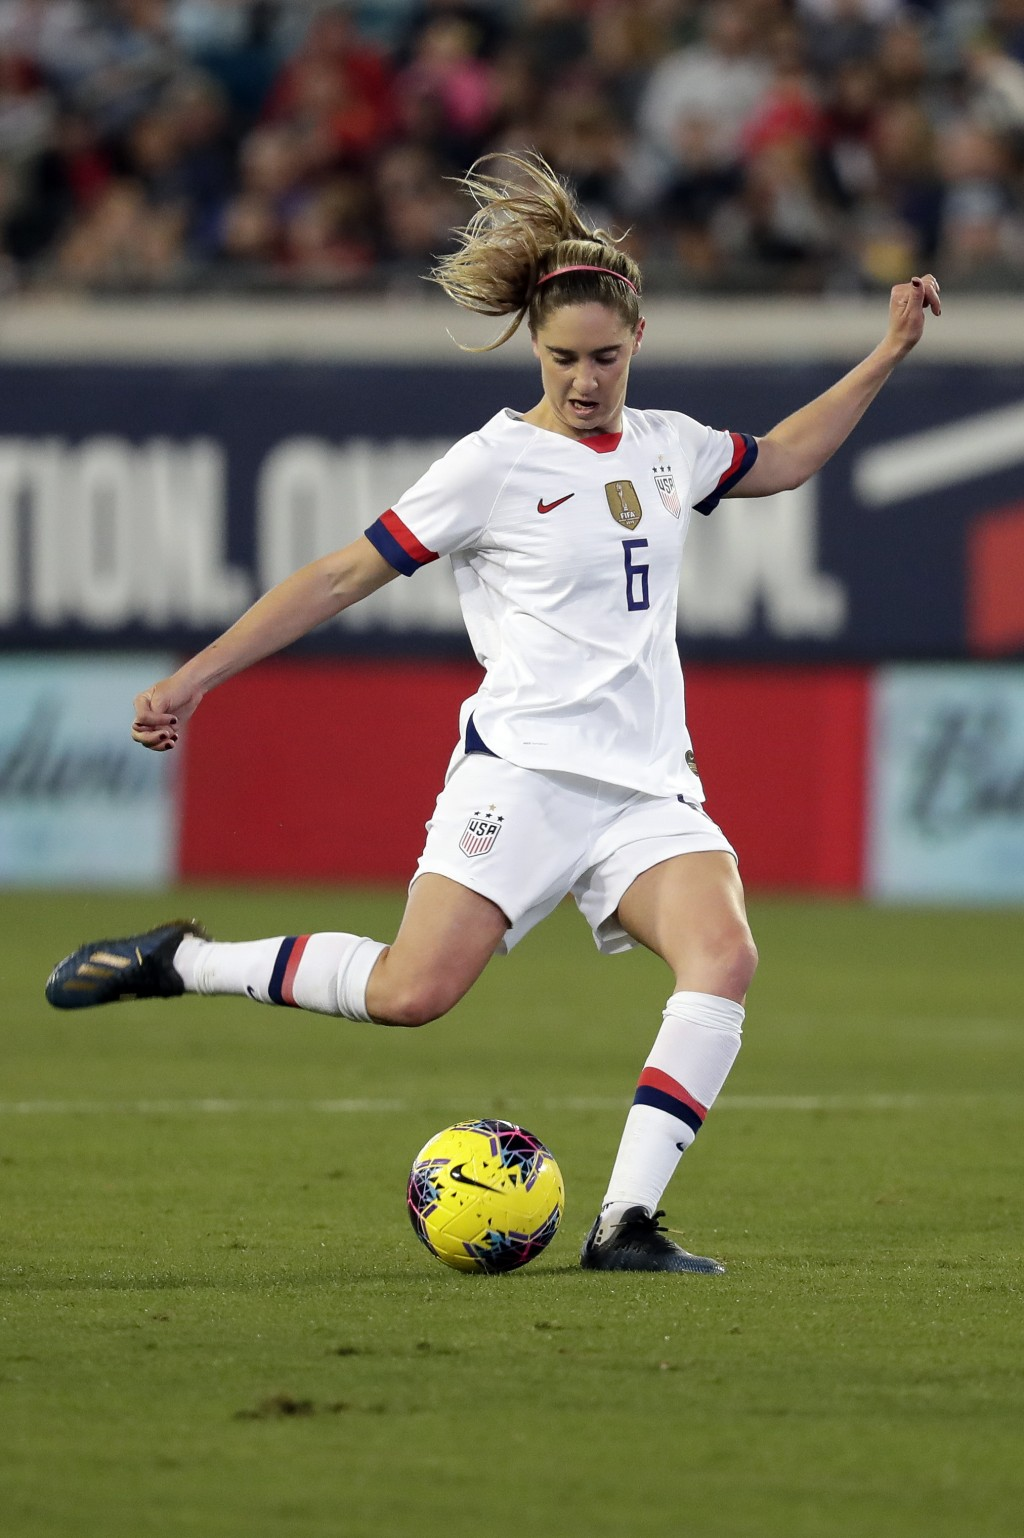 U.S. midfielder Morgan Brian (6) shoots against Costa Rica during the first half of an international friendly soccer match Sunday, Nov. 10, 2019, in J...